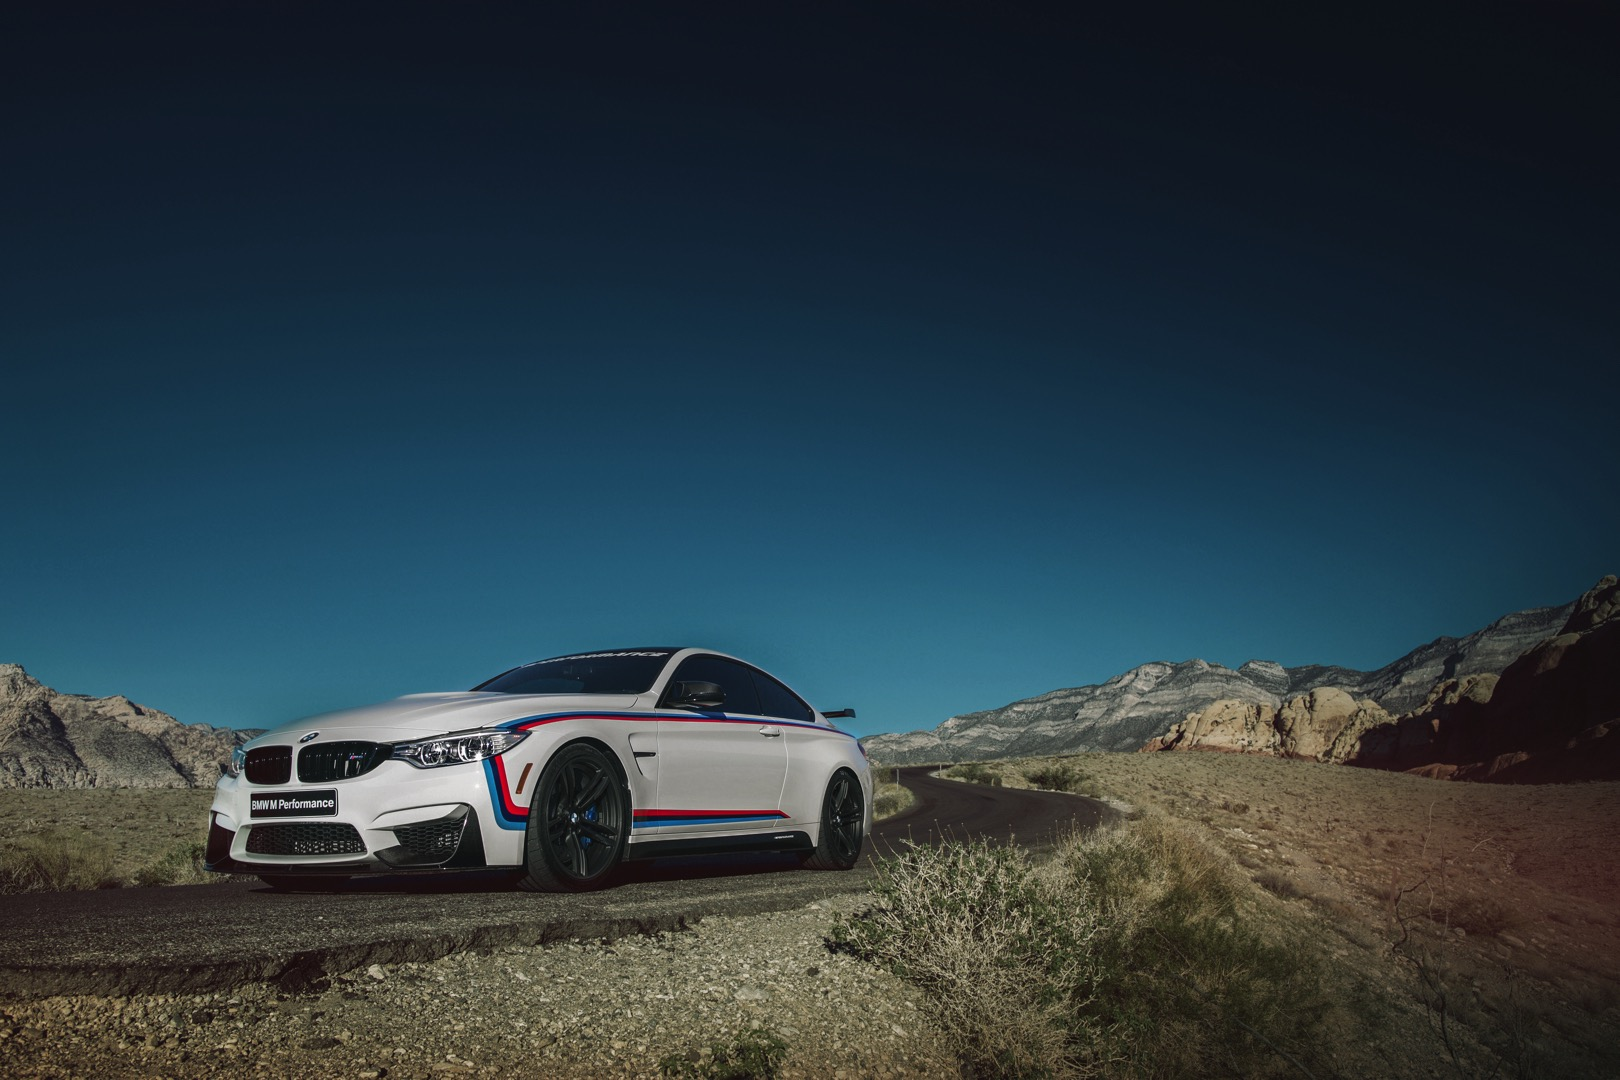 BMW M4 with M Performance Parts Wallpapers: The Thirst for ...